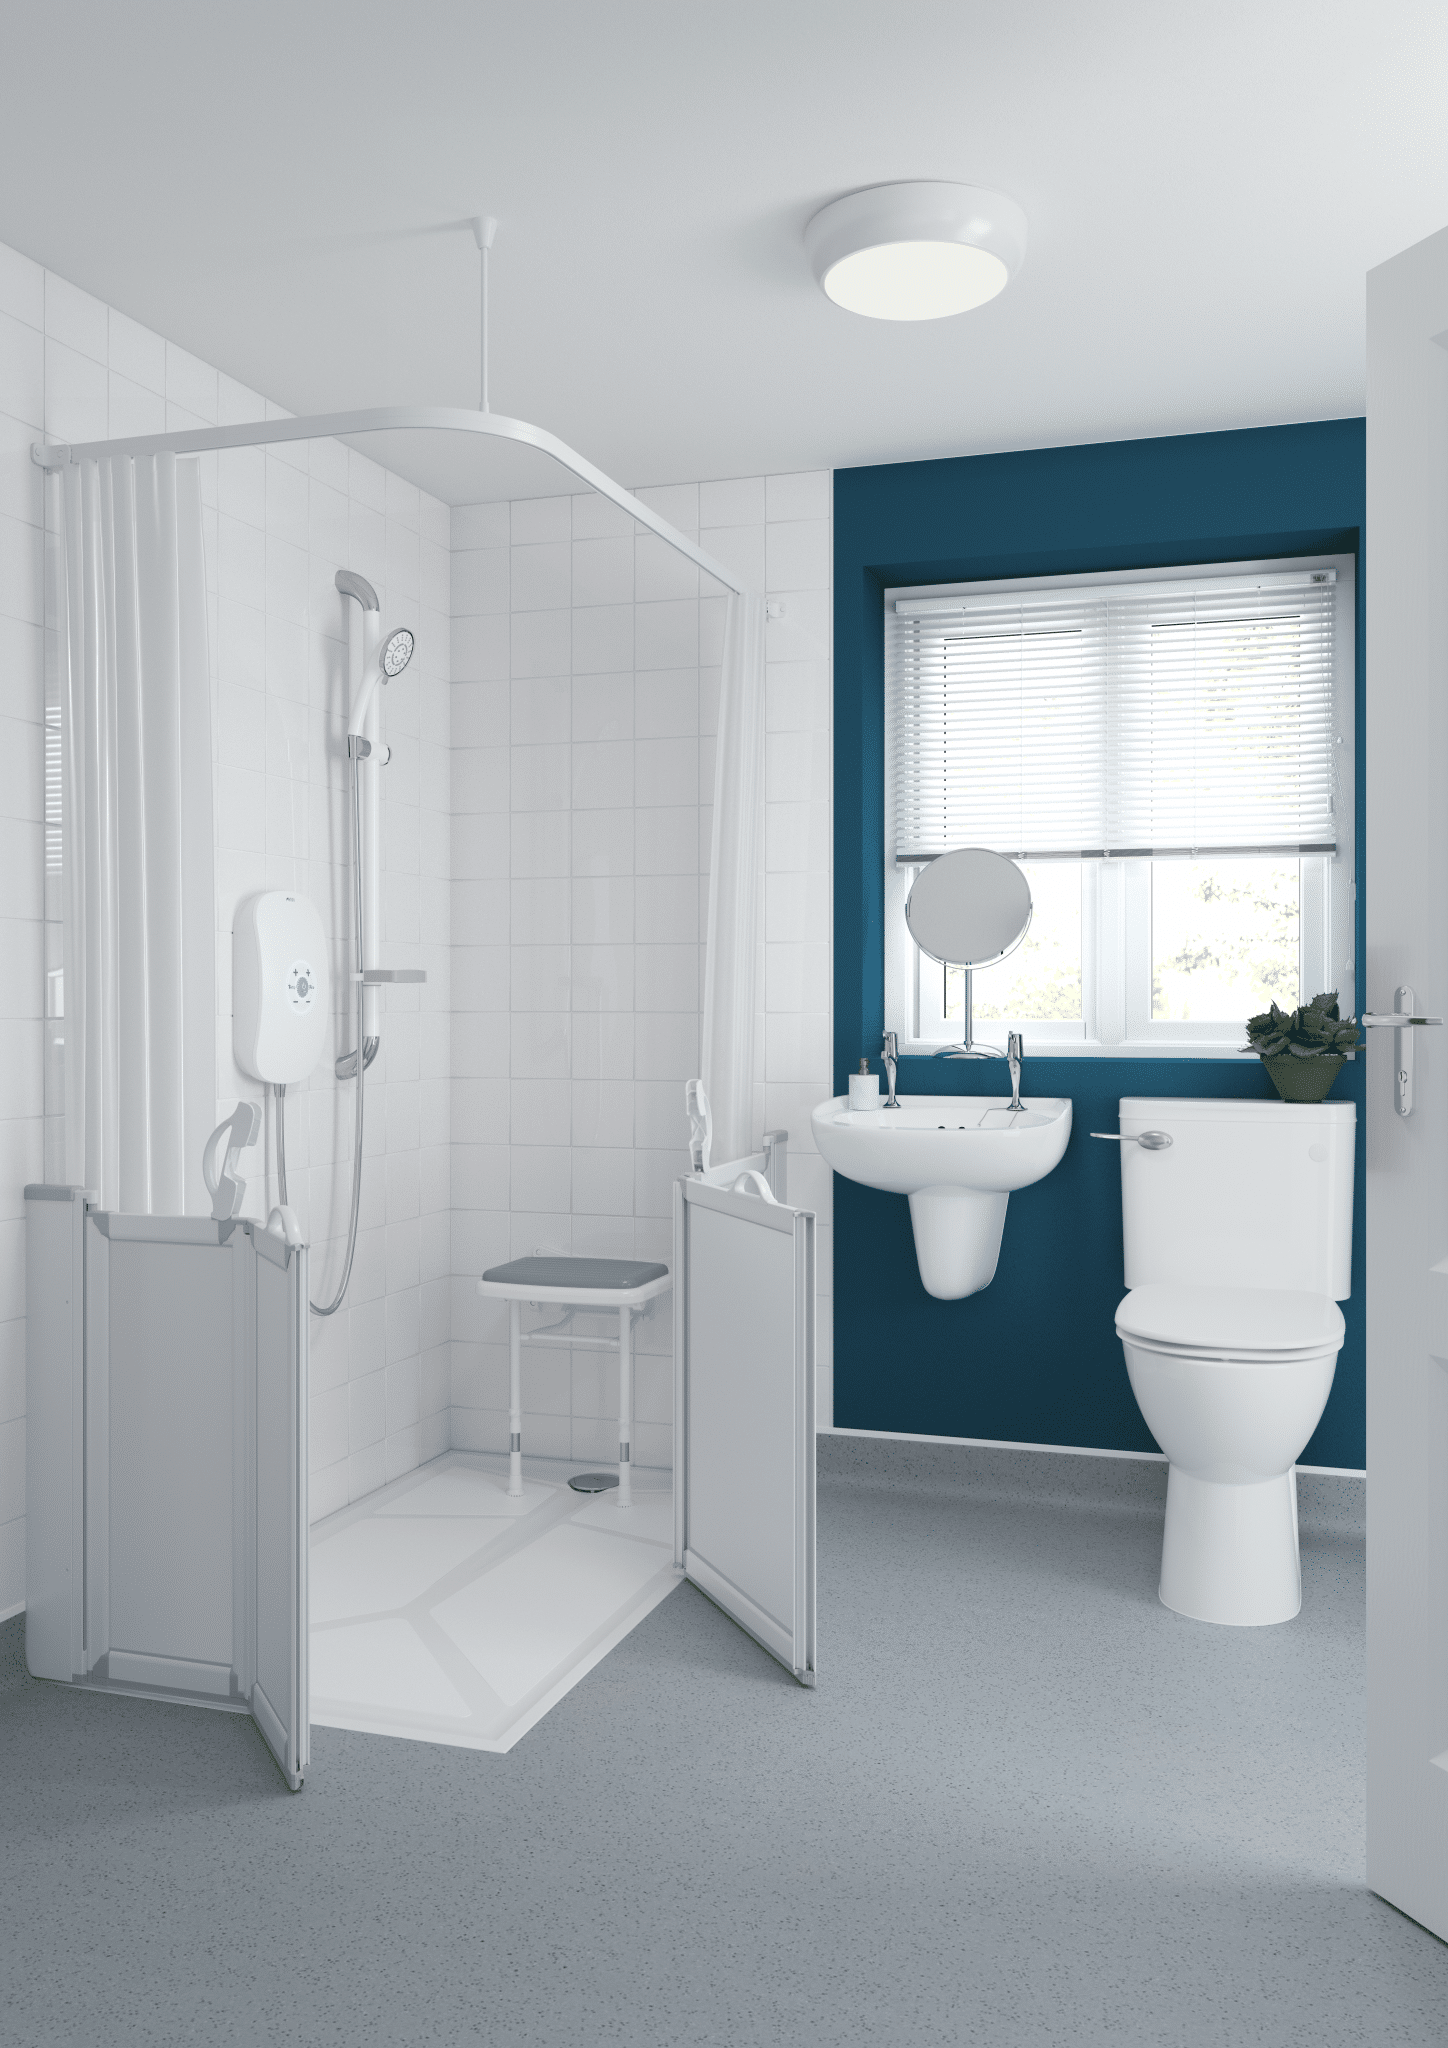 Mobility Bathrooms Portishead, Clevedon, Nailsea, Bristol